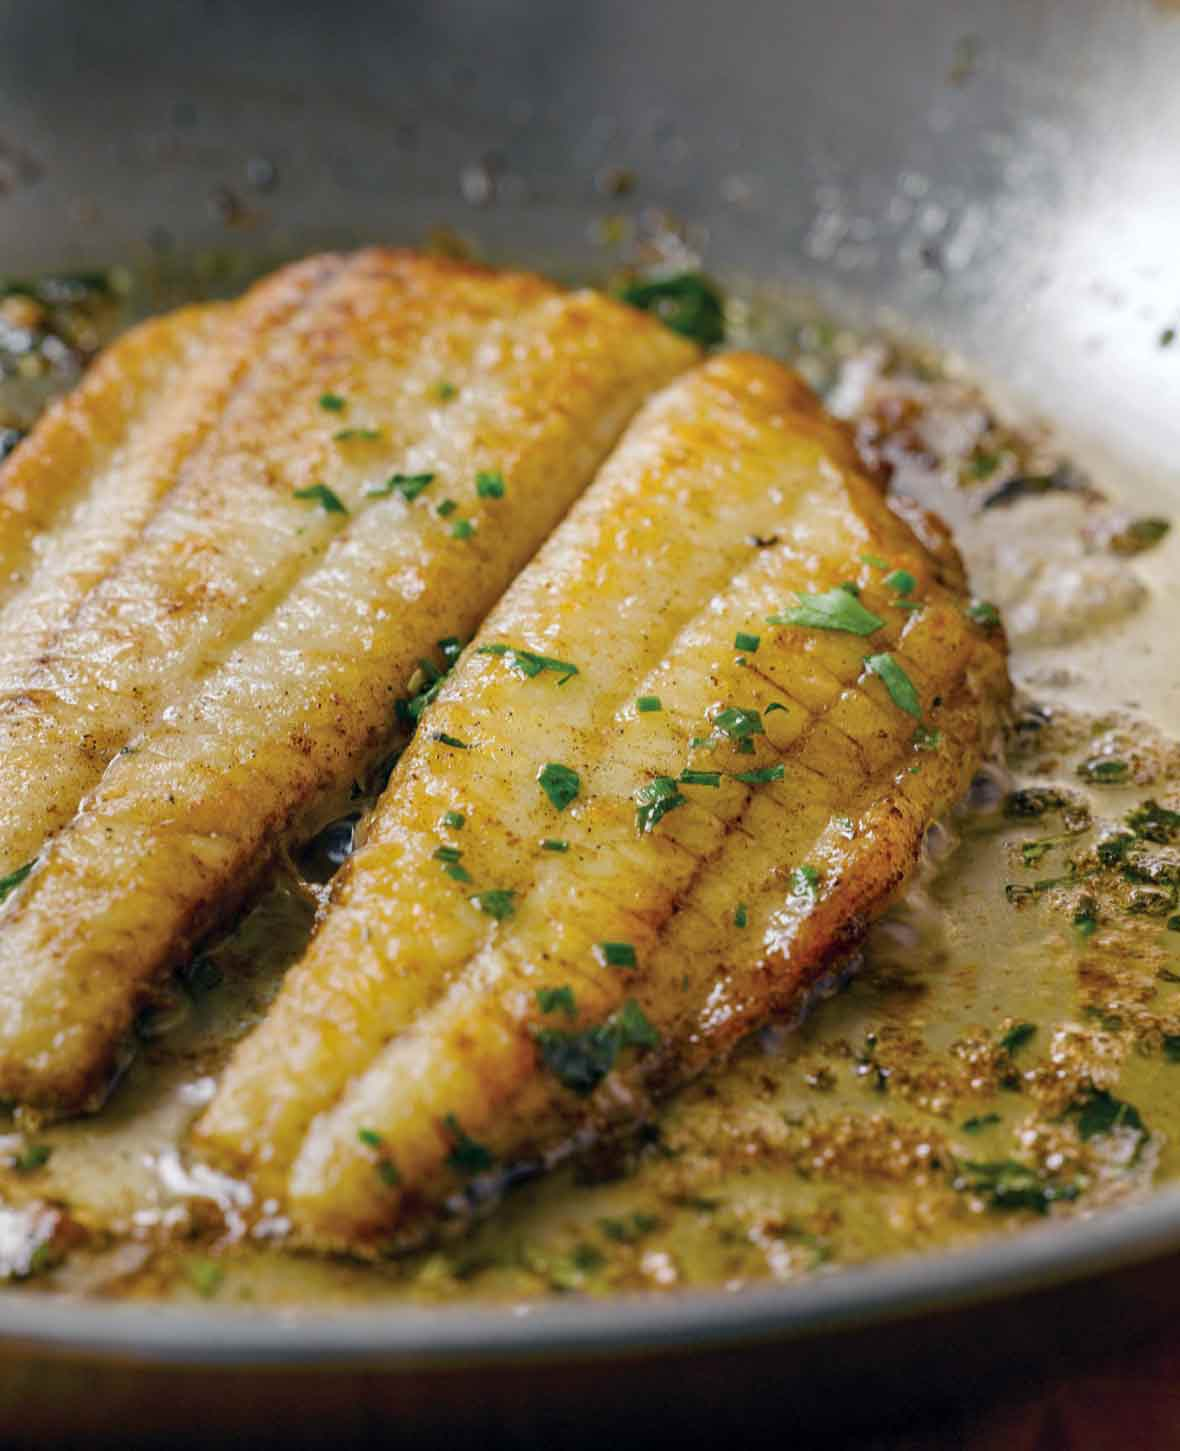 Two fillets of flounder in a lemon butter sauce in a skillet topped with chopped parsley